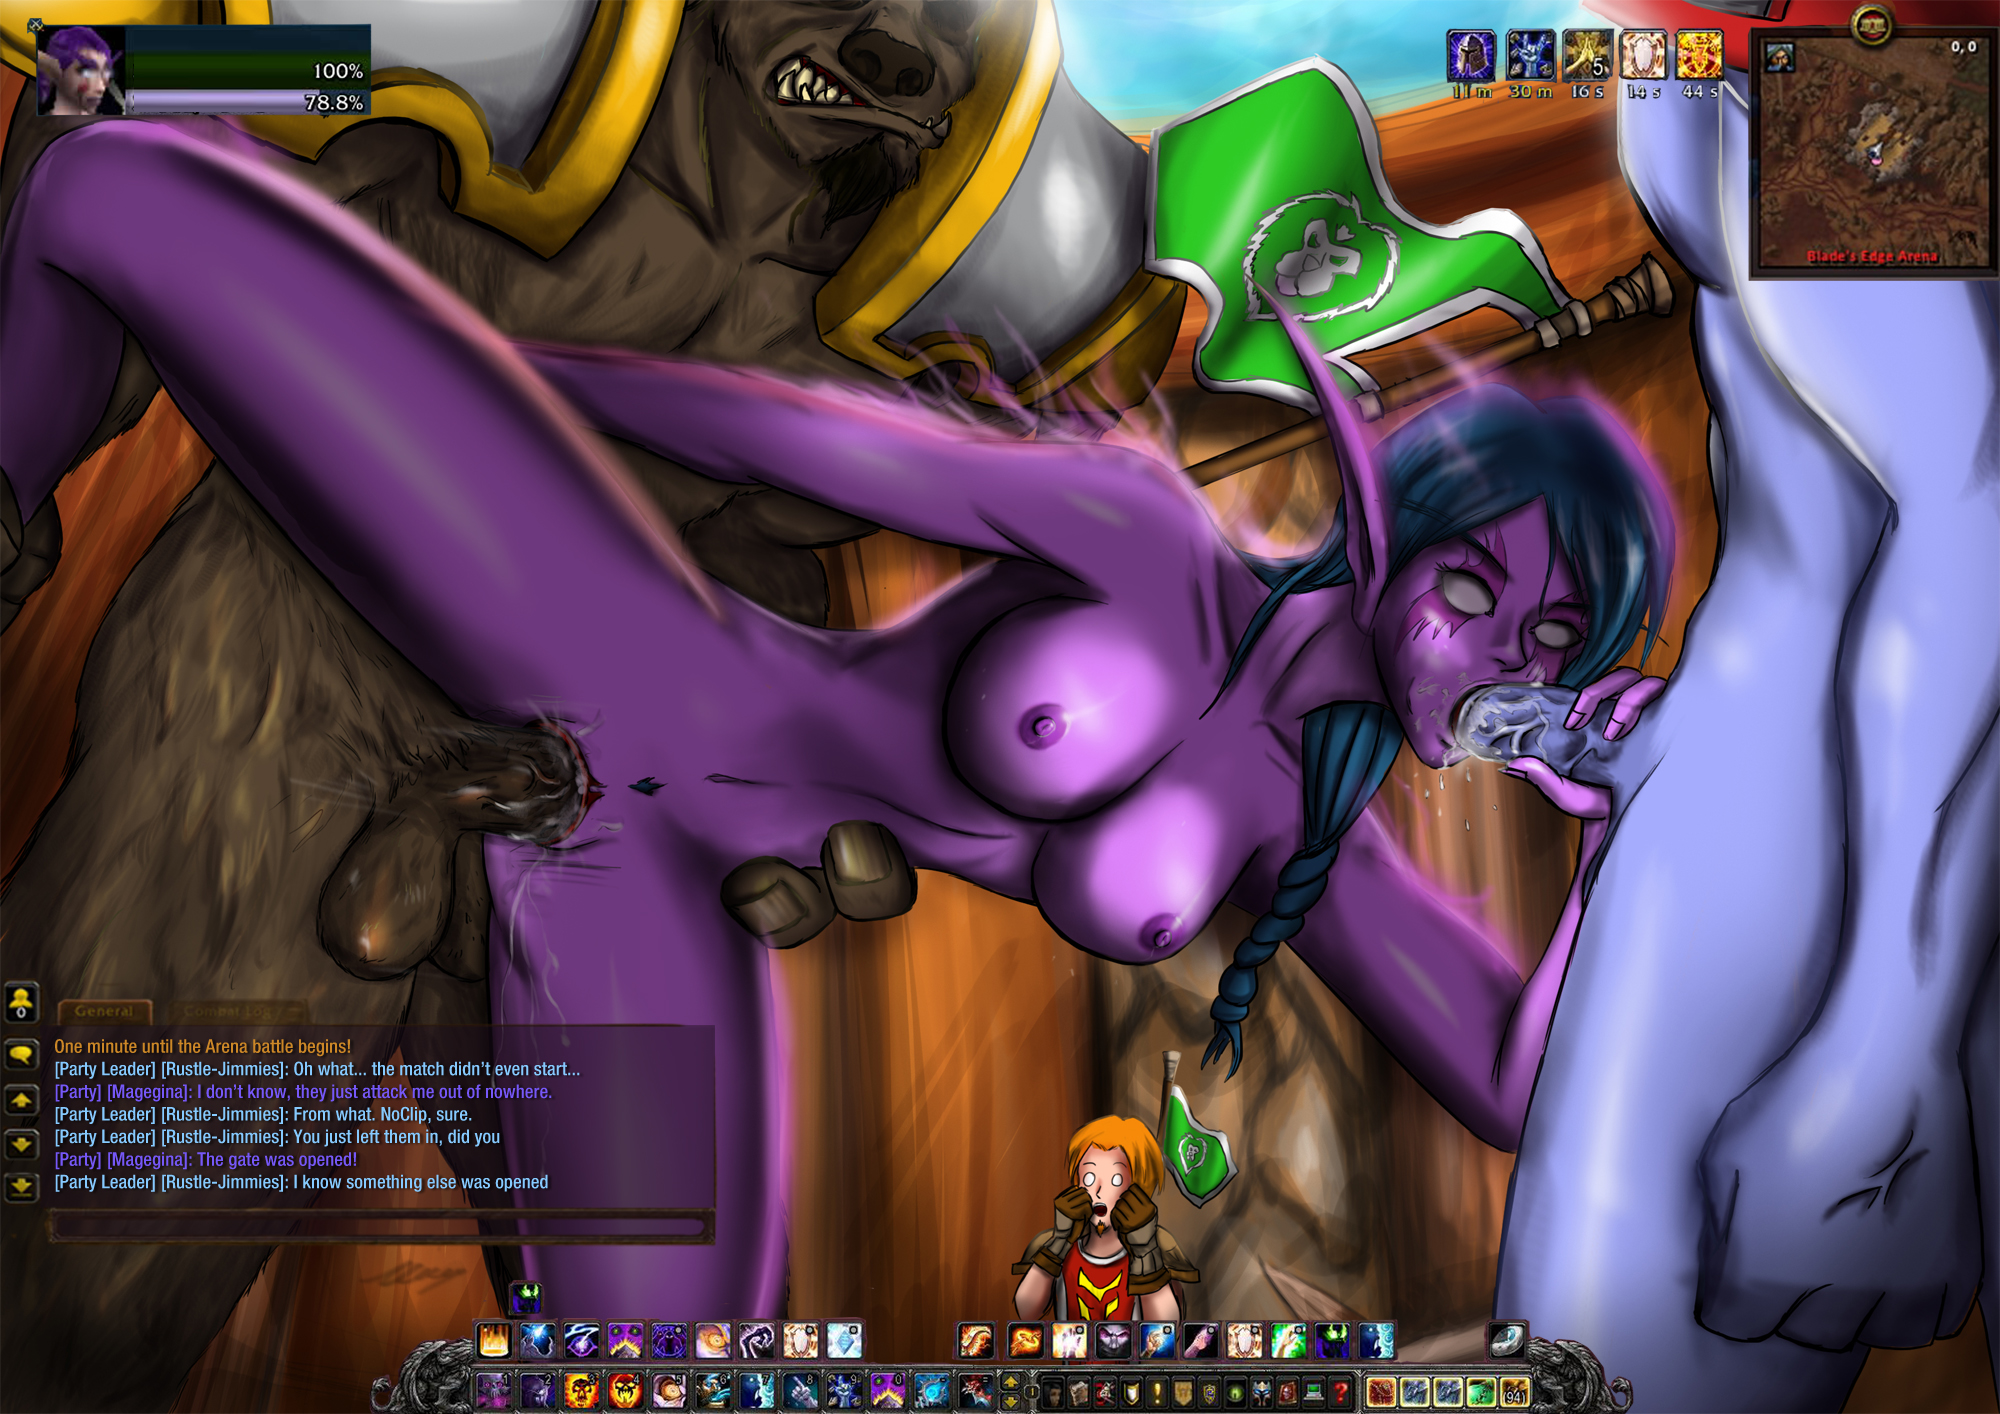 Night elf elf porn exposed videos